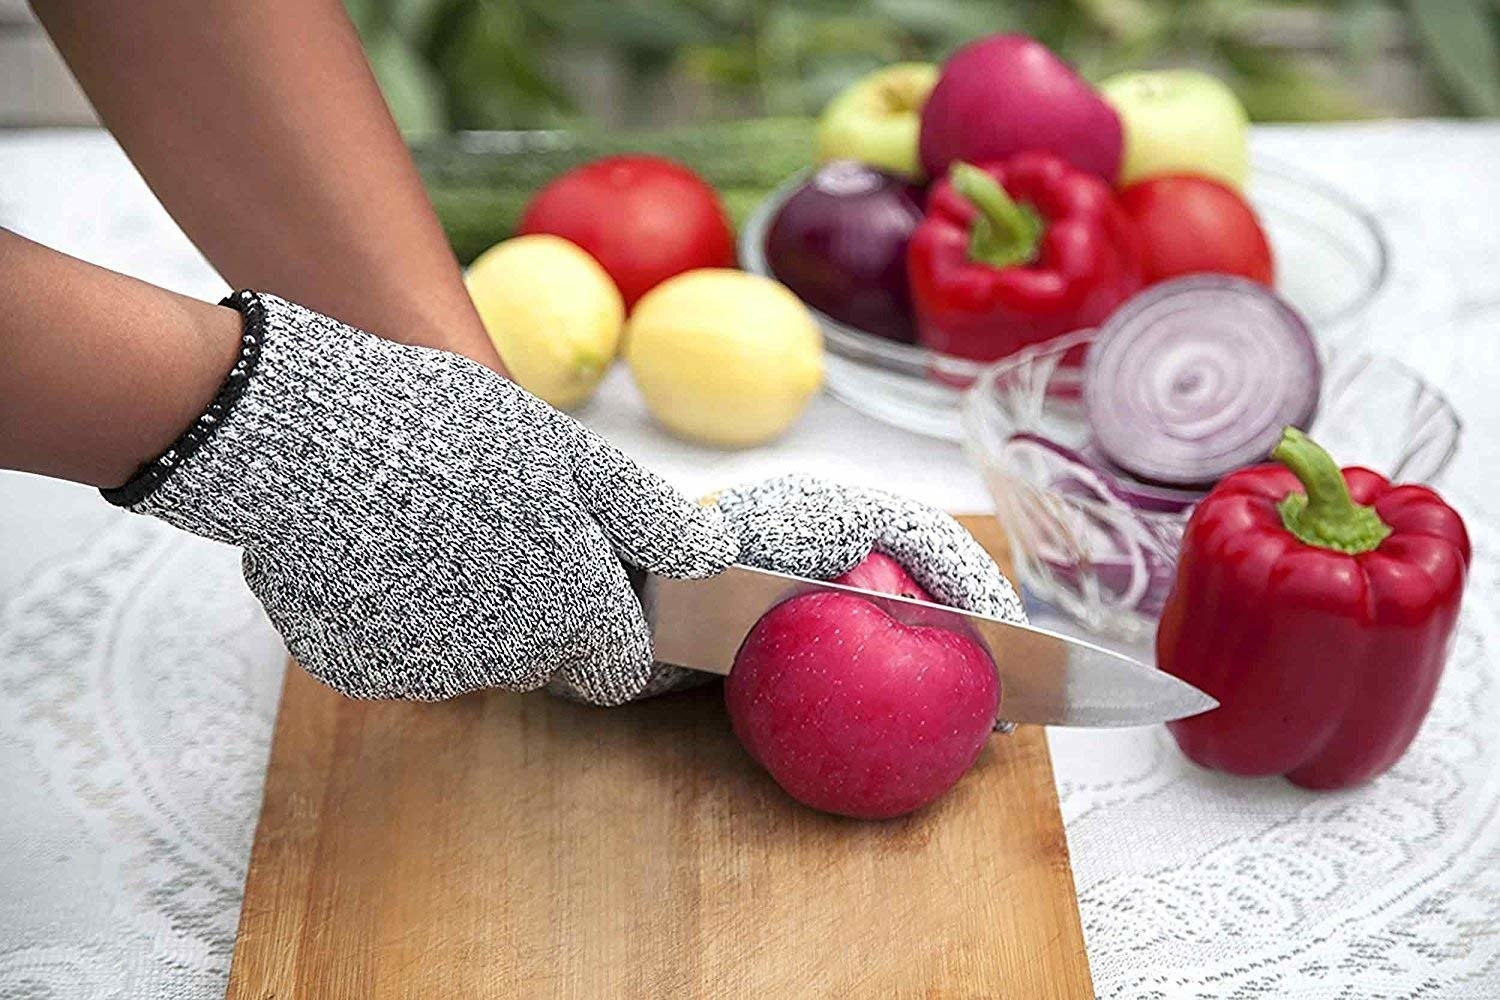 A hand with anti-cut gloves cutting a fruit